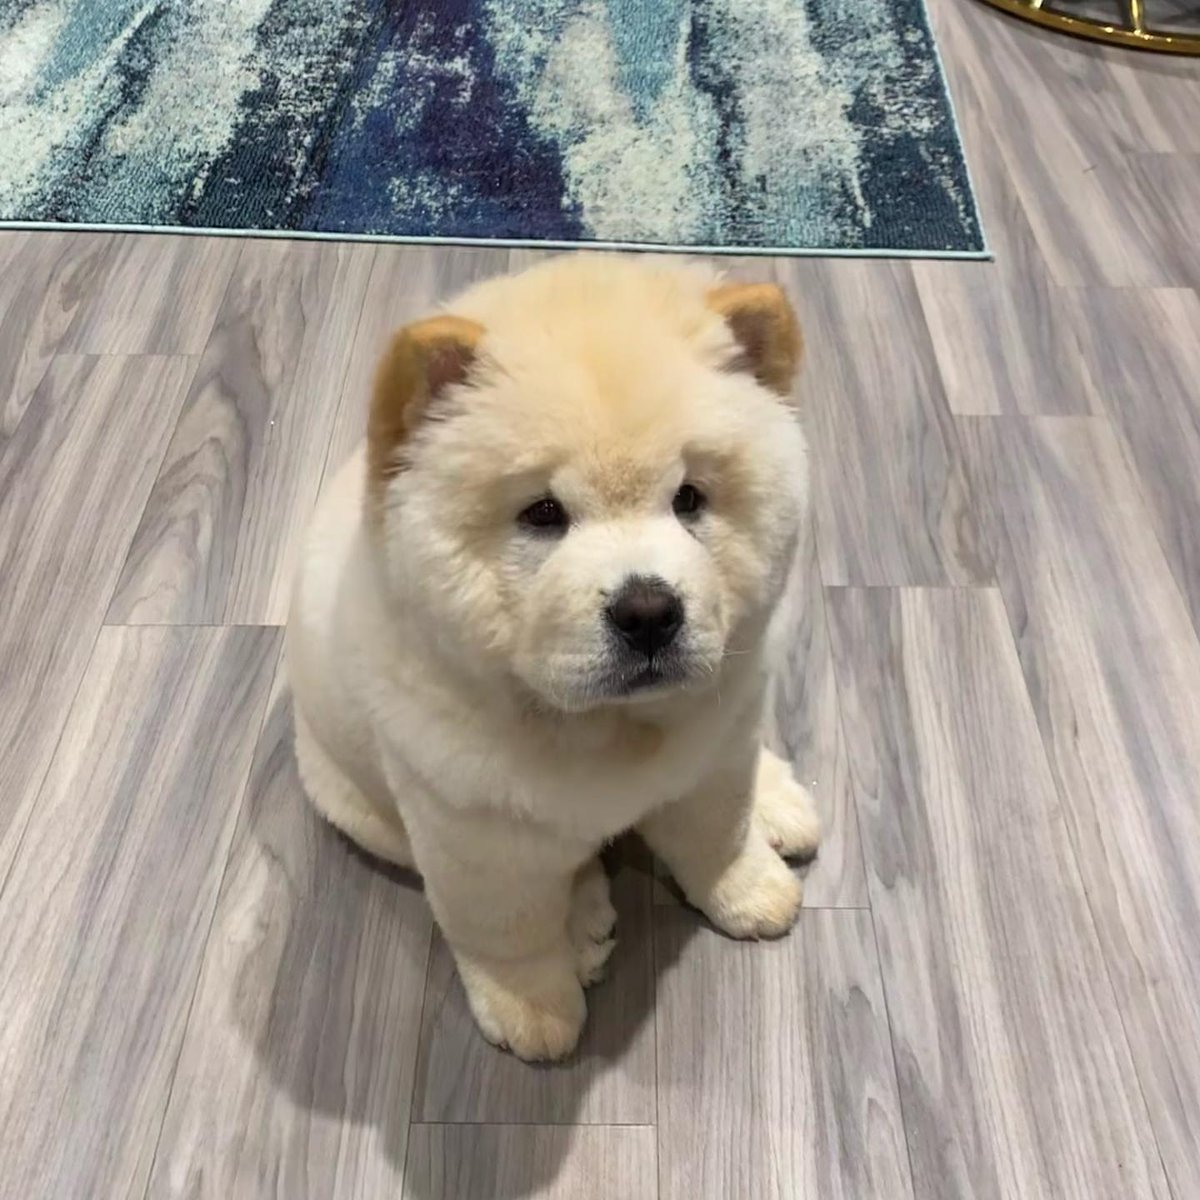 #SundayFunday  .. with  🐶 Cesar - the cutest Chow Chow pup around😍🤍 Everyone can express their opinions in the family, right? 🐾 😉 ✨  - 🎥 credit @cesar.the.chow - #weekendvibes #pets4homes